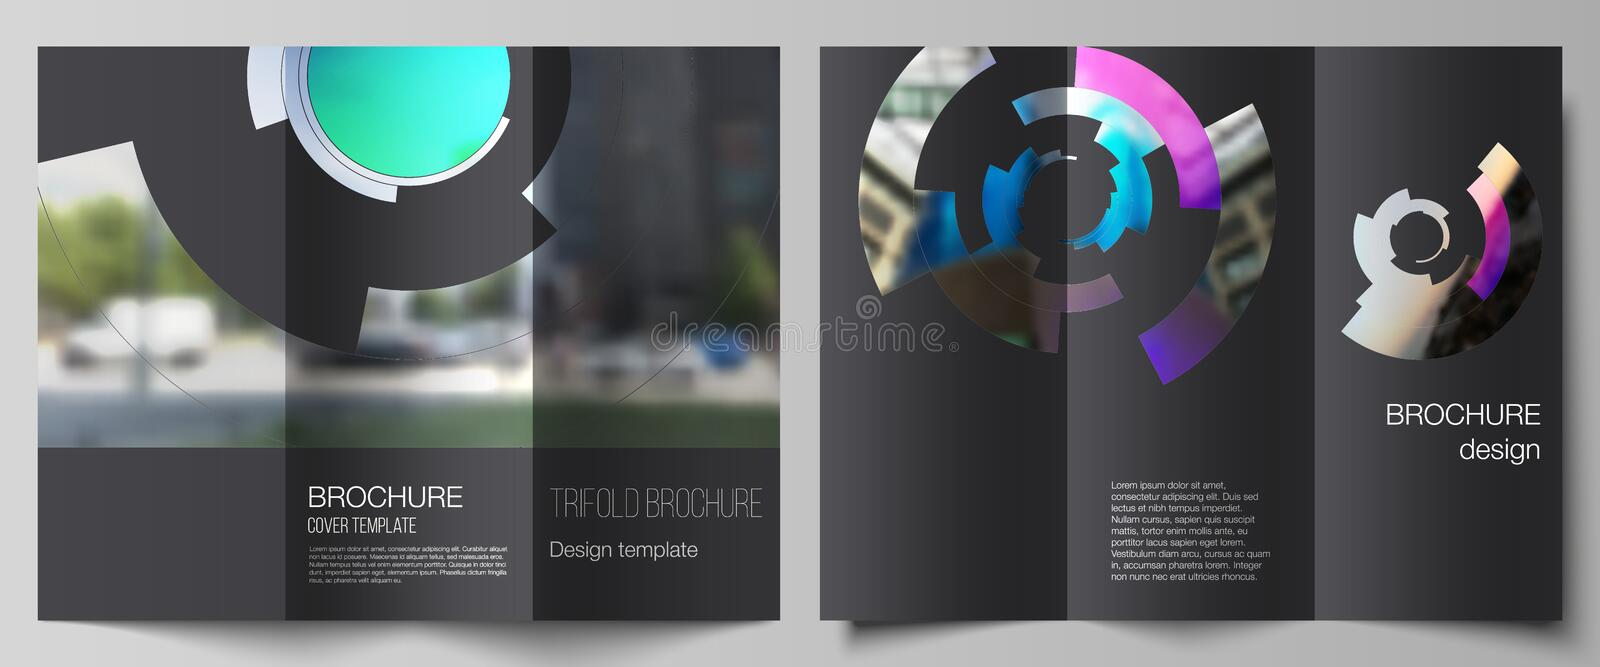 The minimal vector layouts. Modern creative covers design templates for trifold brochure or flyer. Futuristic design. Circular pattern, circle elements forming stock illustration